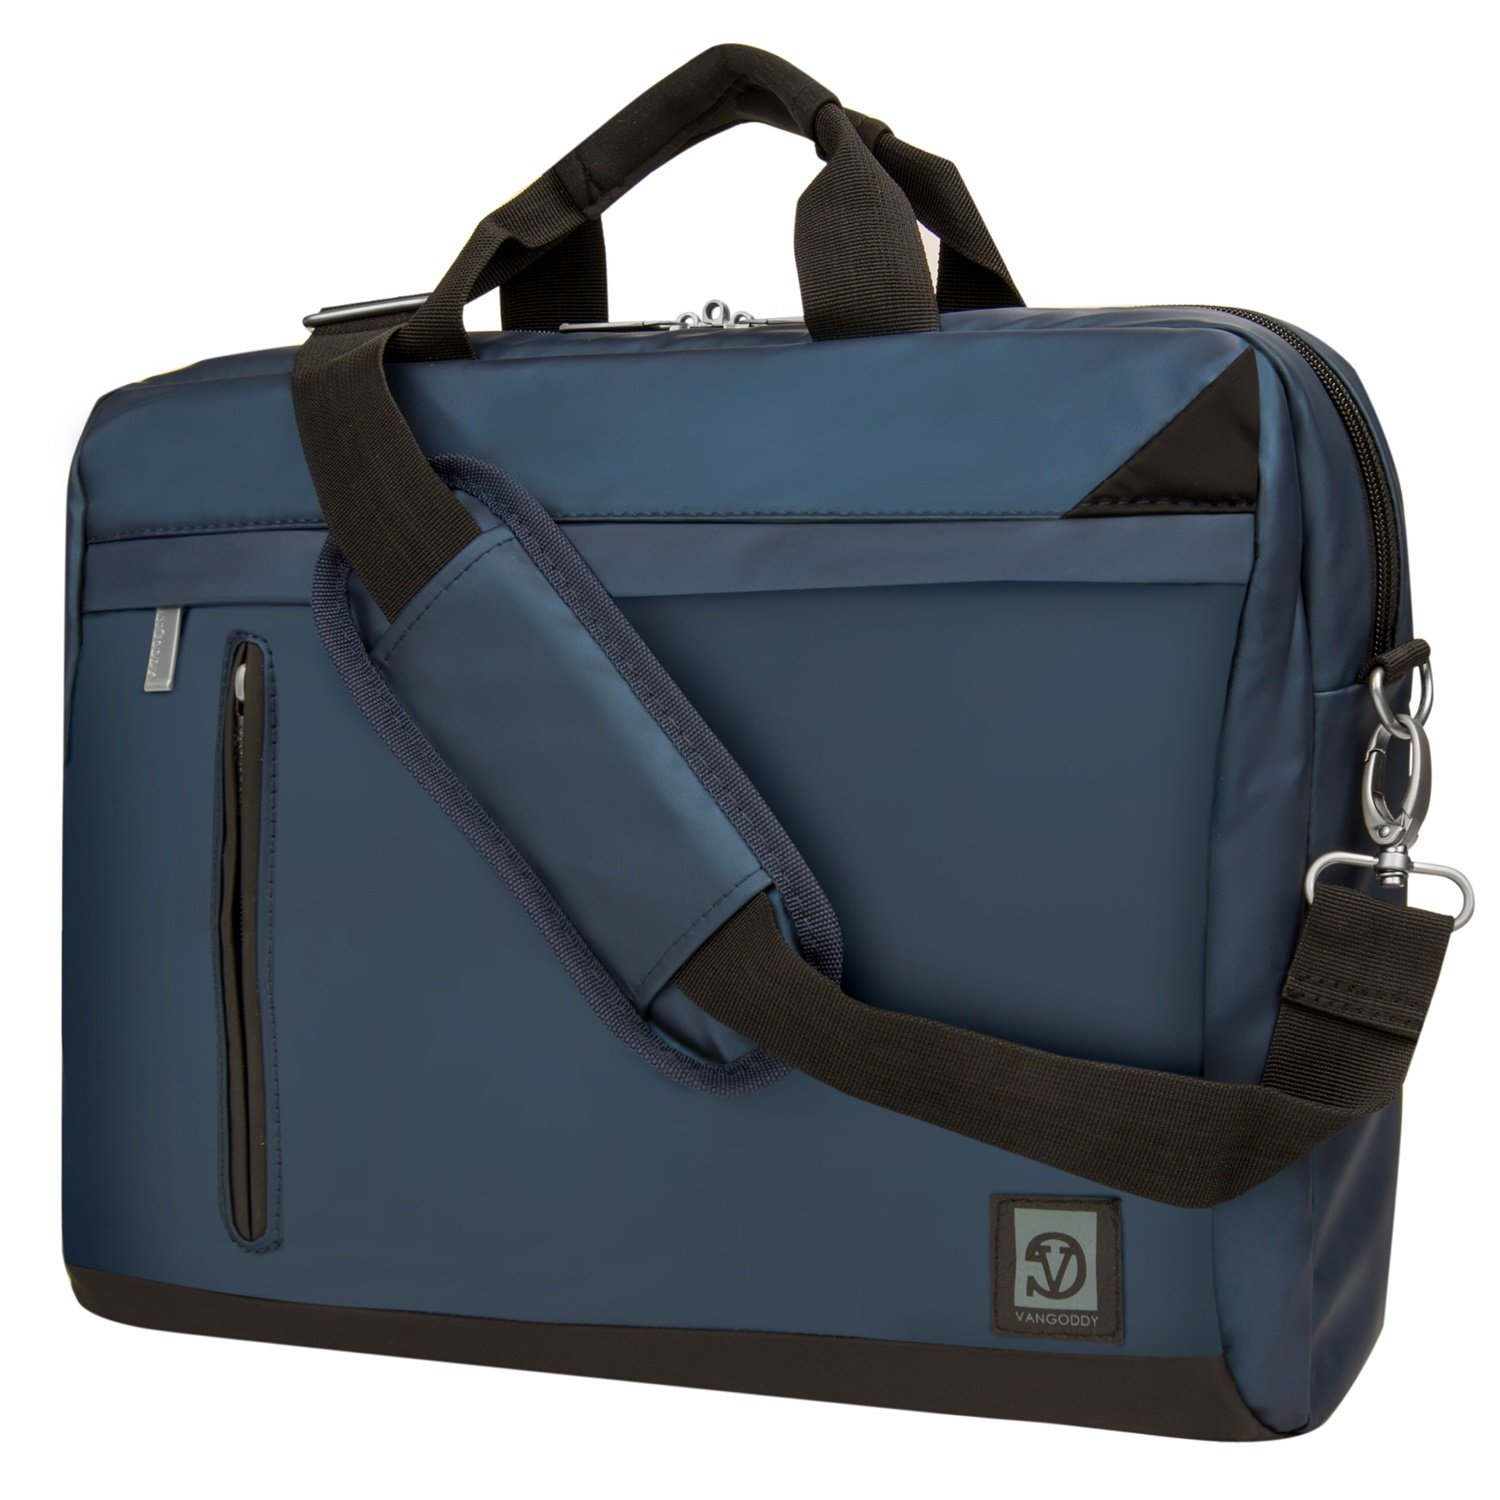 VanGoddy Adler Briefcase Messenger Bag for Dell 14 to 15.6-inch Laptops (Blue) cheap